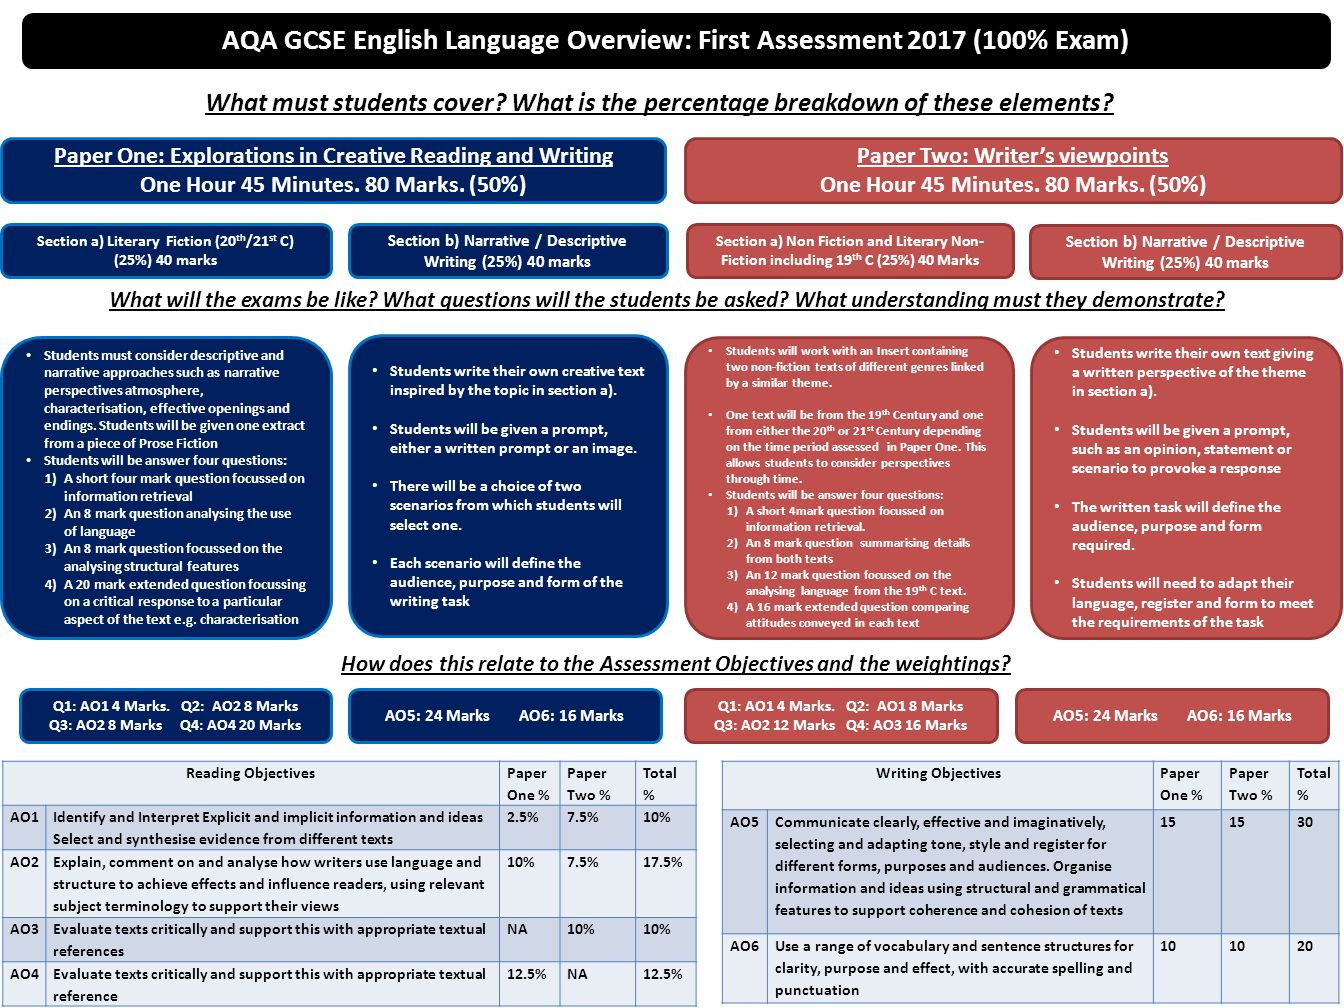 AQA GCSE English Language Overview: First Assessment 2017 (100% Exam)